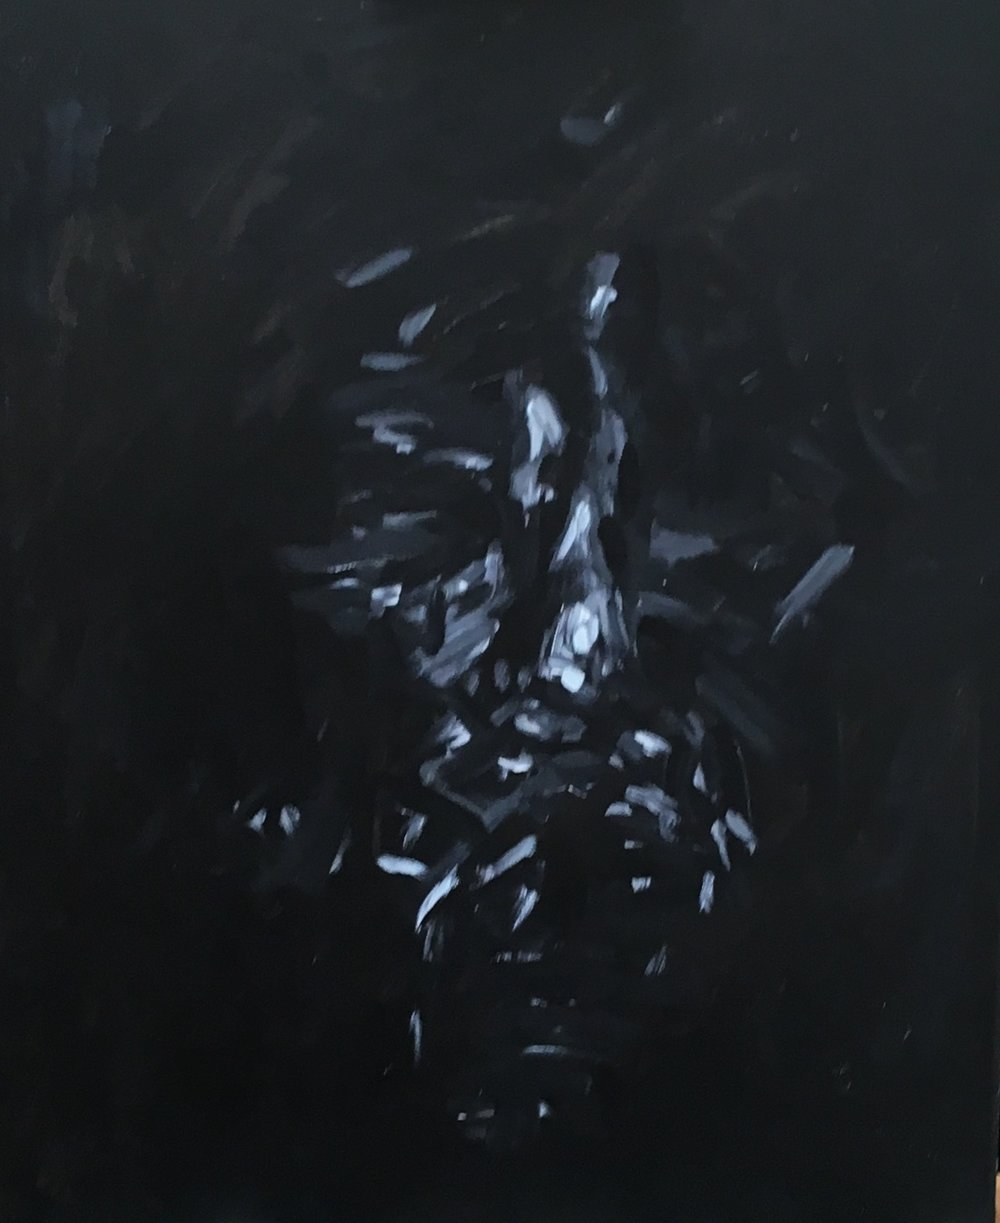 the face in the darkness  acrylic on canvas  £700  50 by 60 cm  unframed